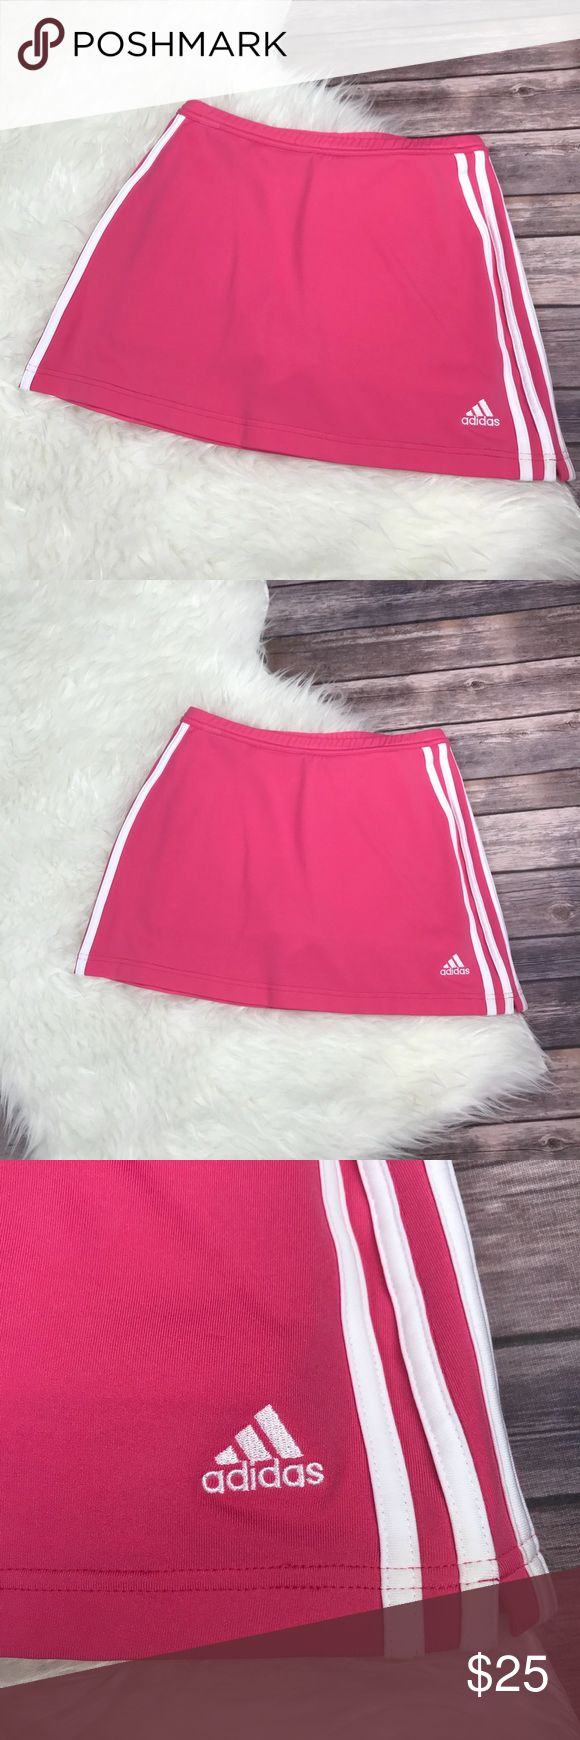 Adidas  Pink Mini Skirt With Shorts Tennis Skirt -Adidas  -Bright Pink -Tennis Skirt -Shirt / Skort  -Like New -Small Pick On Back (Pictured) -Size Small -Climate -13.5 Inches Wide -14.5 Inches Long -Has shorts Underneath -Clima365 adidas Skirts